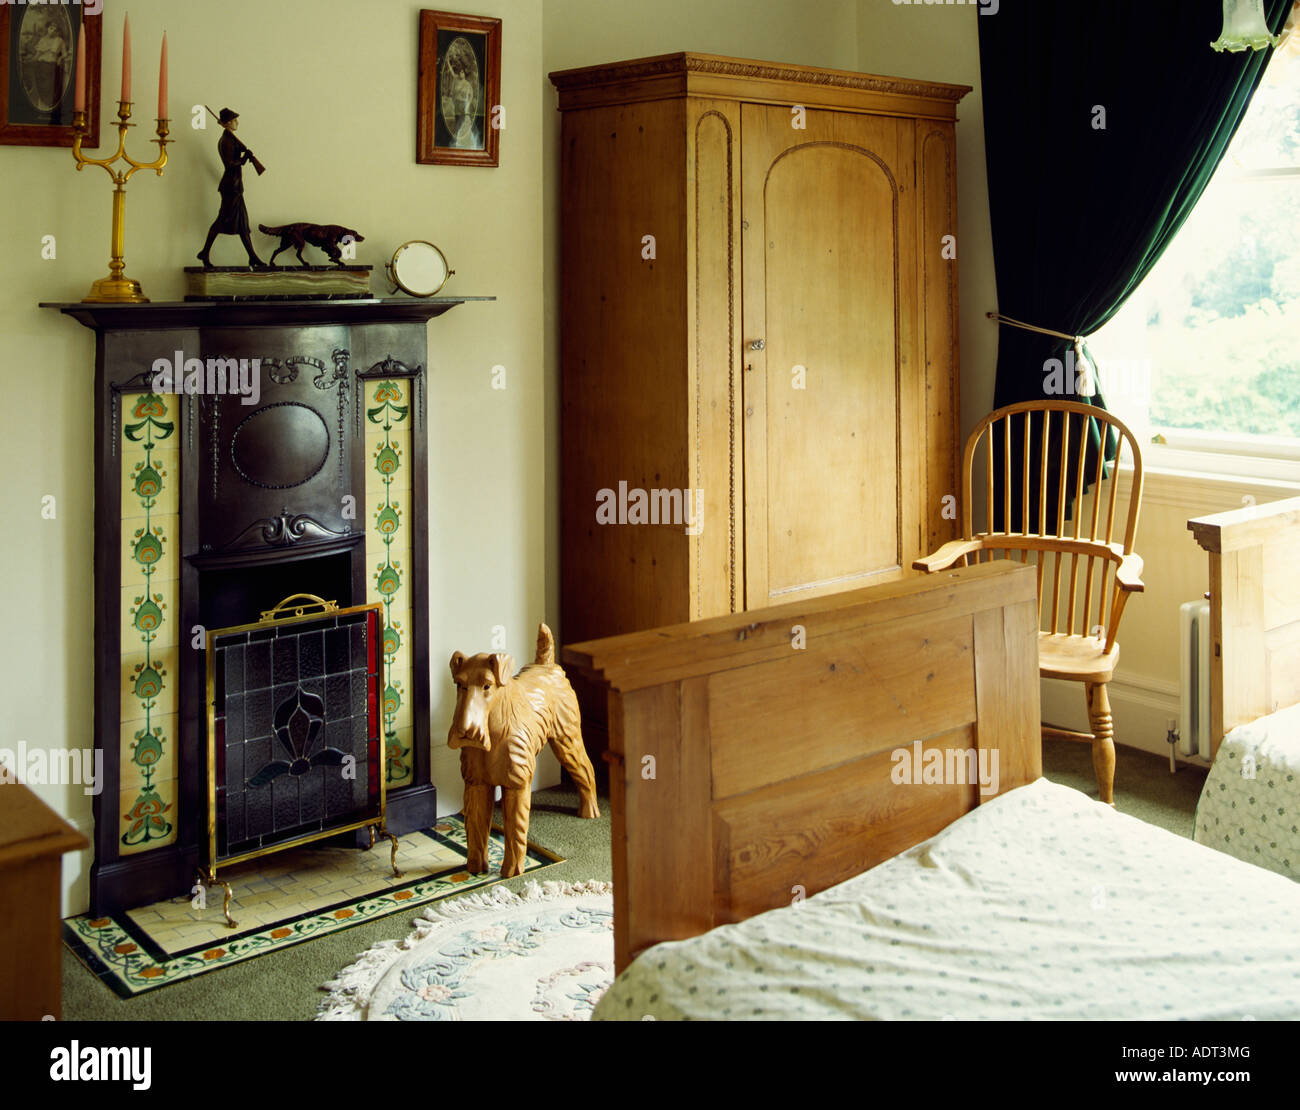 Pine Wood Wardrobe And Bed In Bedroom With Small Cast Iron